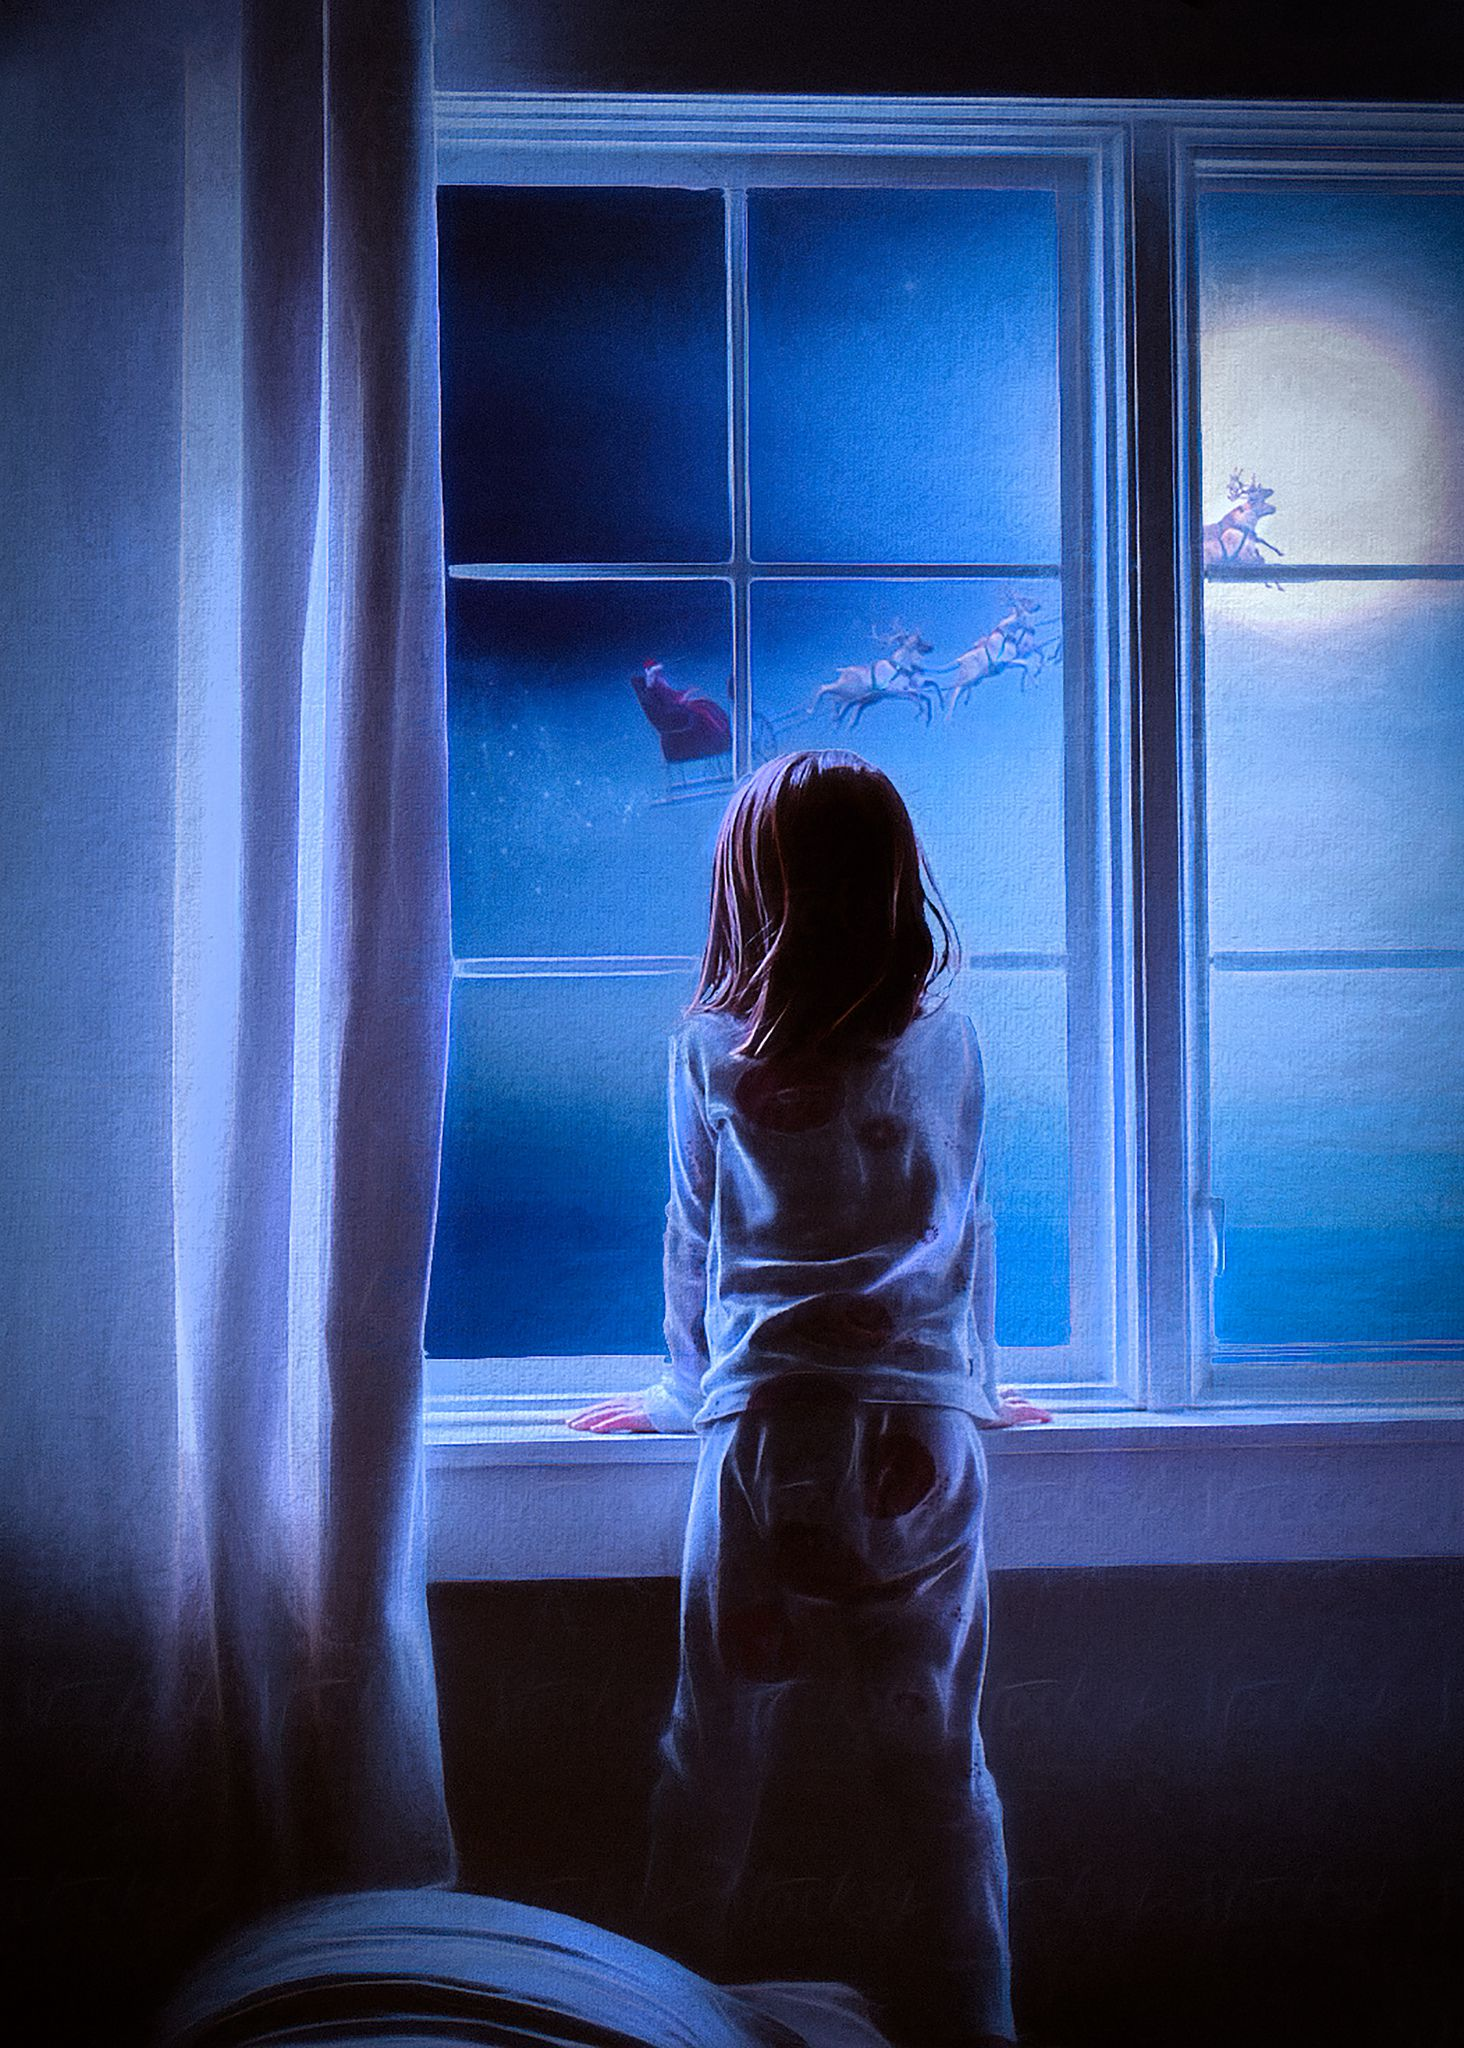 Anime Magic Wallpaper A Little Girl By The Window Santa With Deers At Night